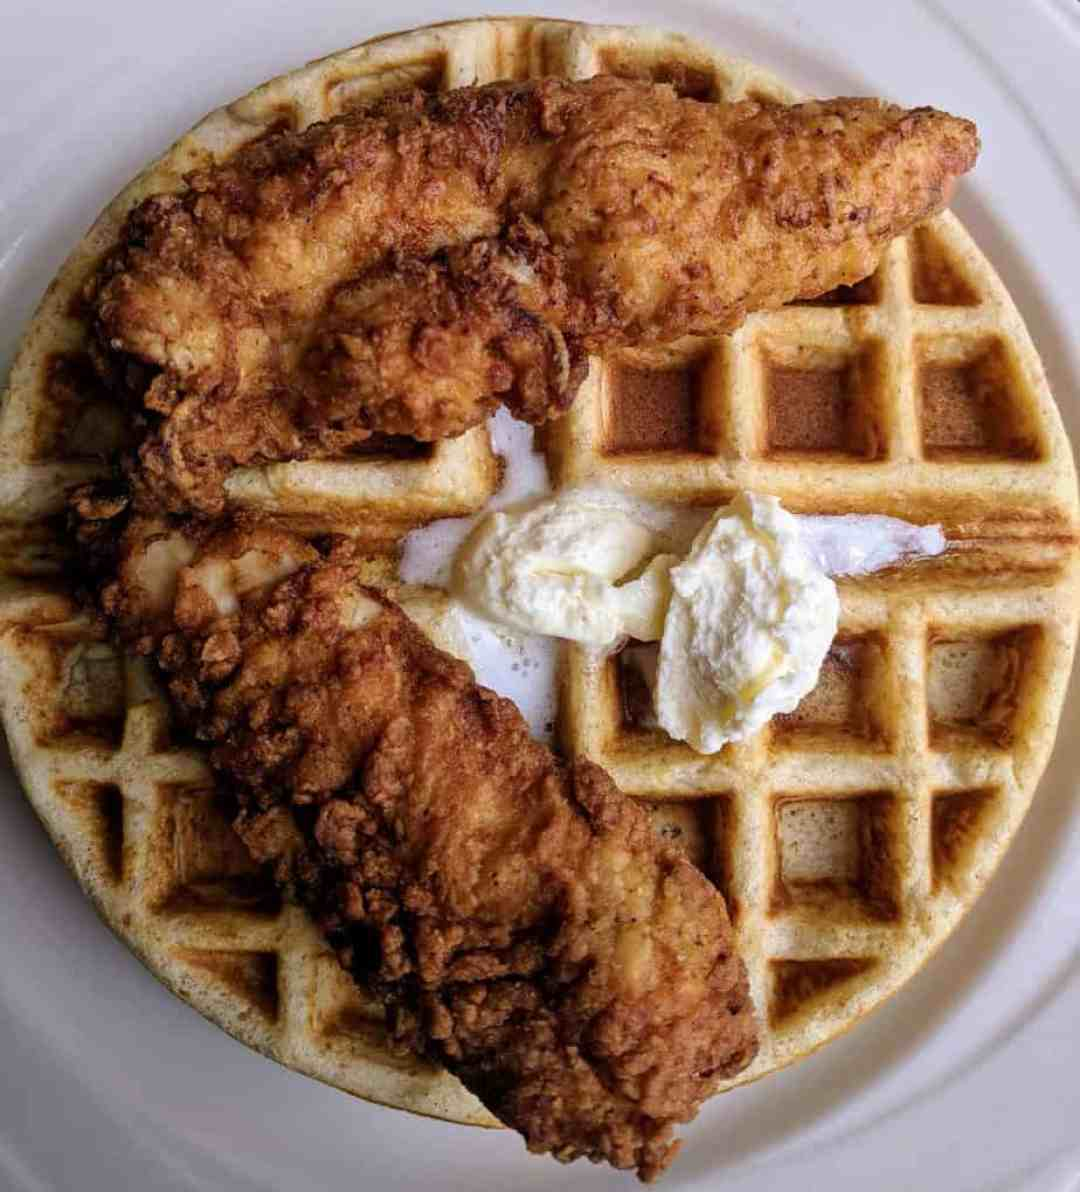 Chicken and Waffles from Coffee Makes You Black